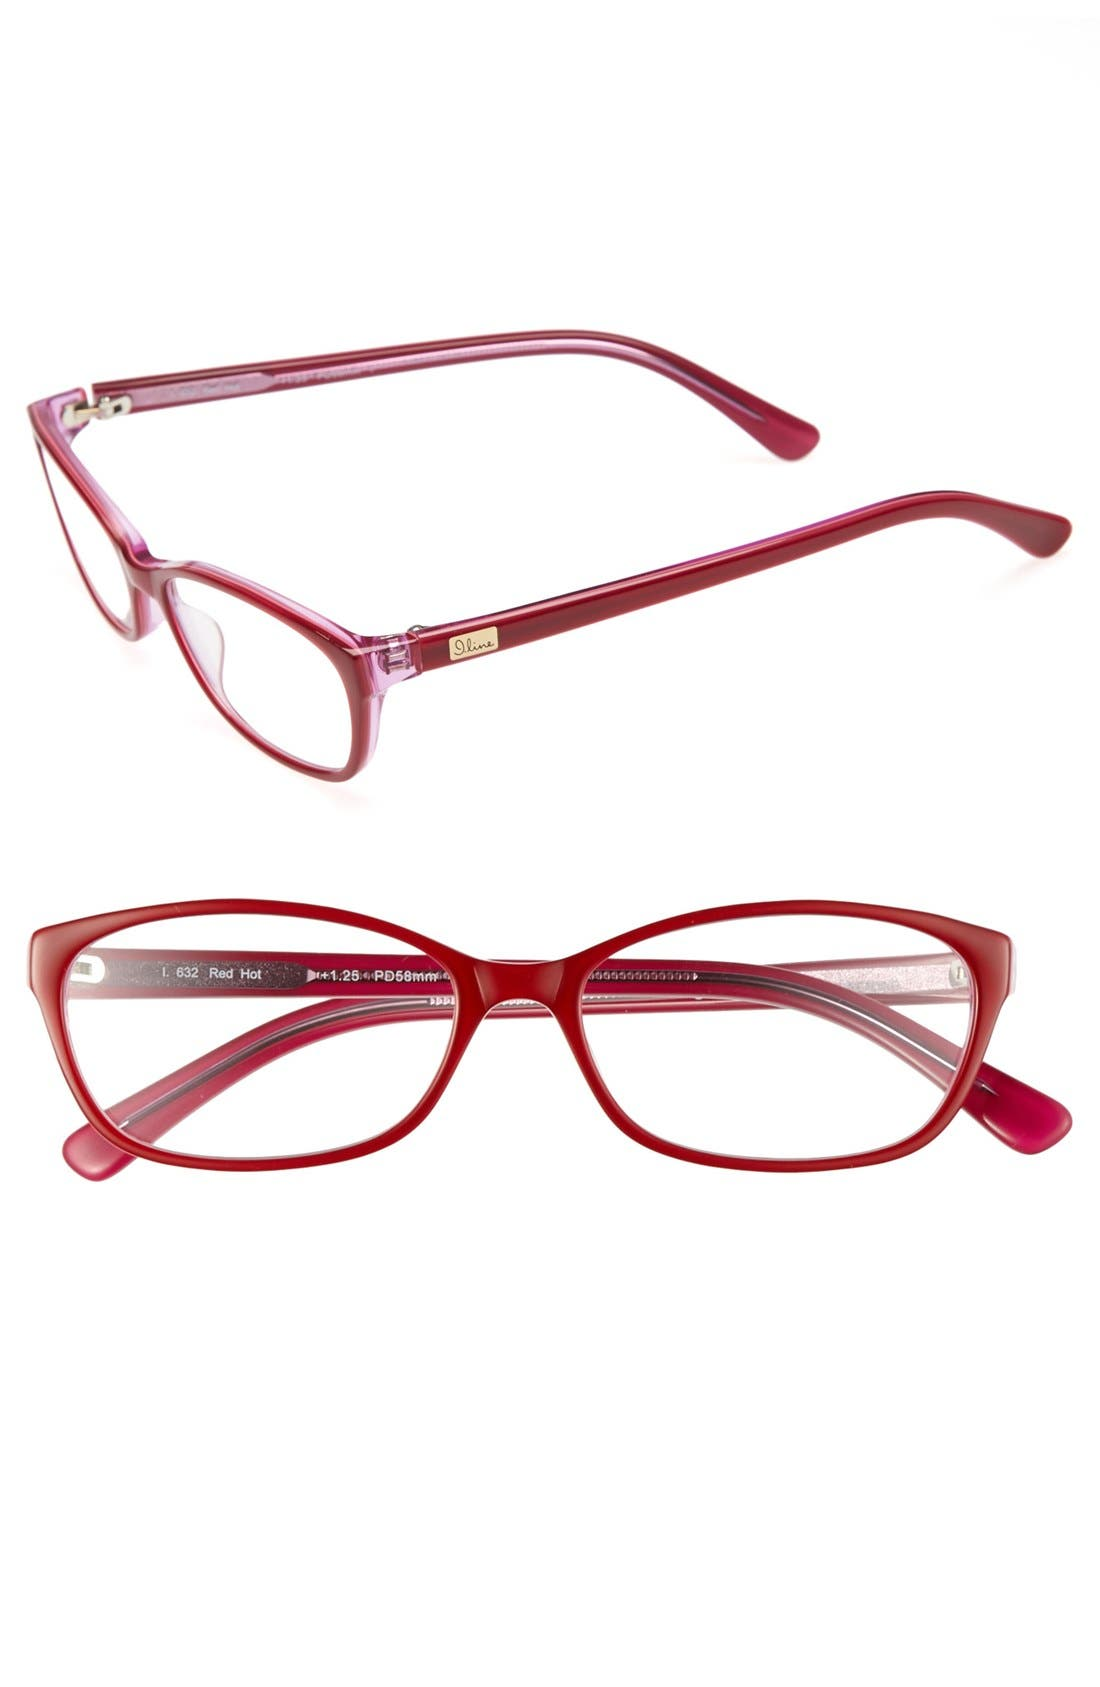 Alternate Image 1 Selected - I Line Eyewear 'Red Hot' 58mm Reading Glasses